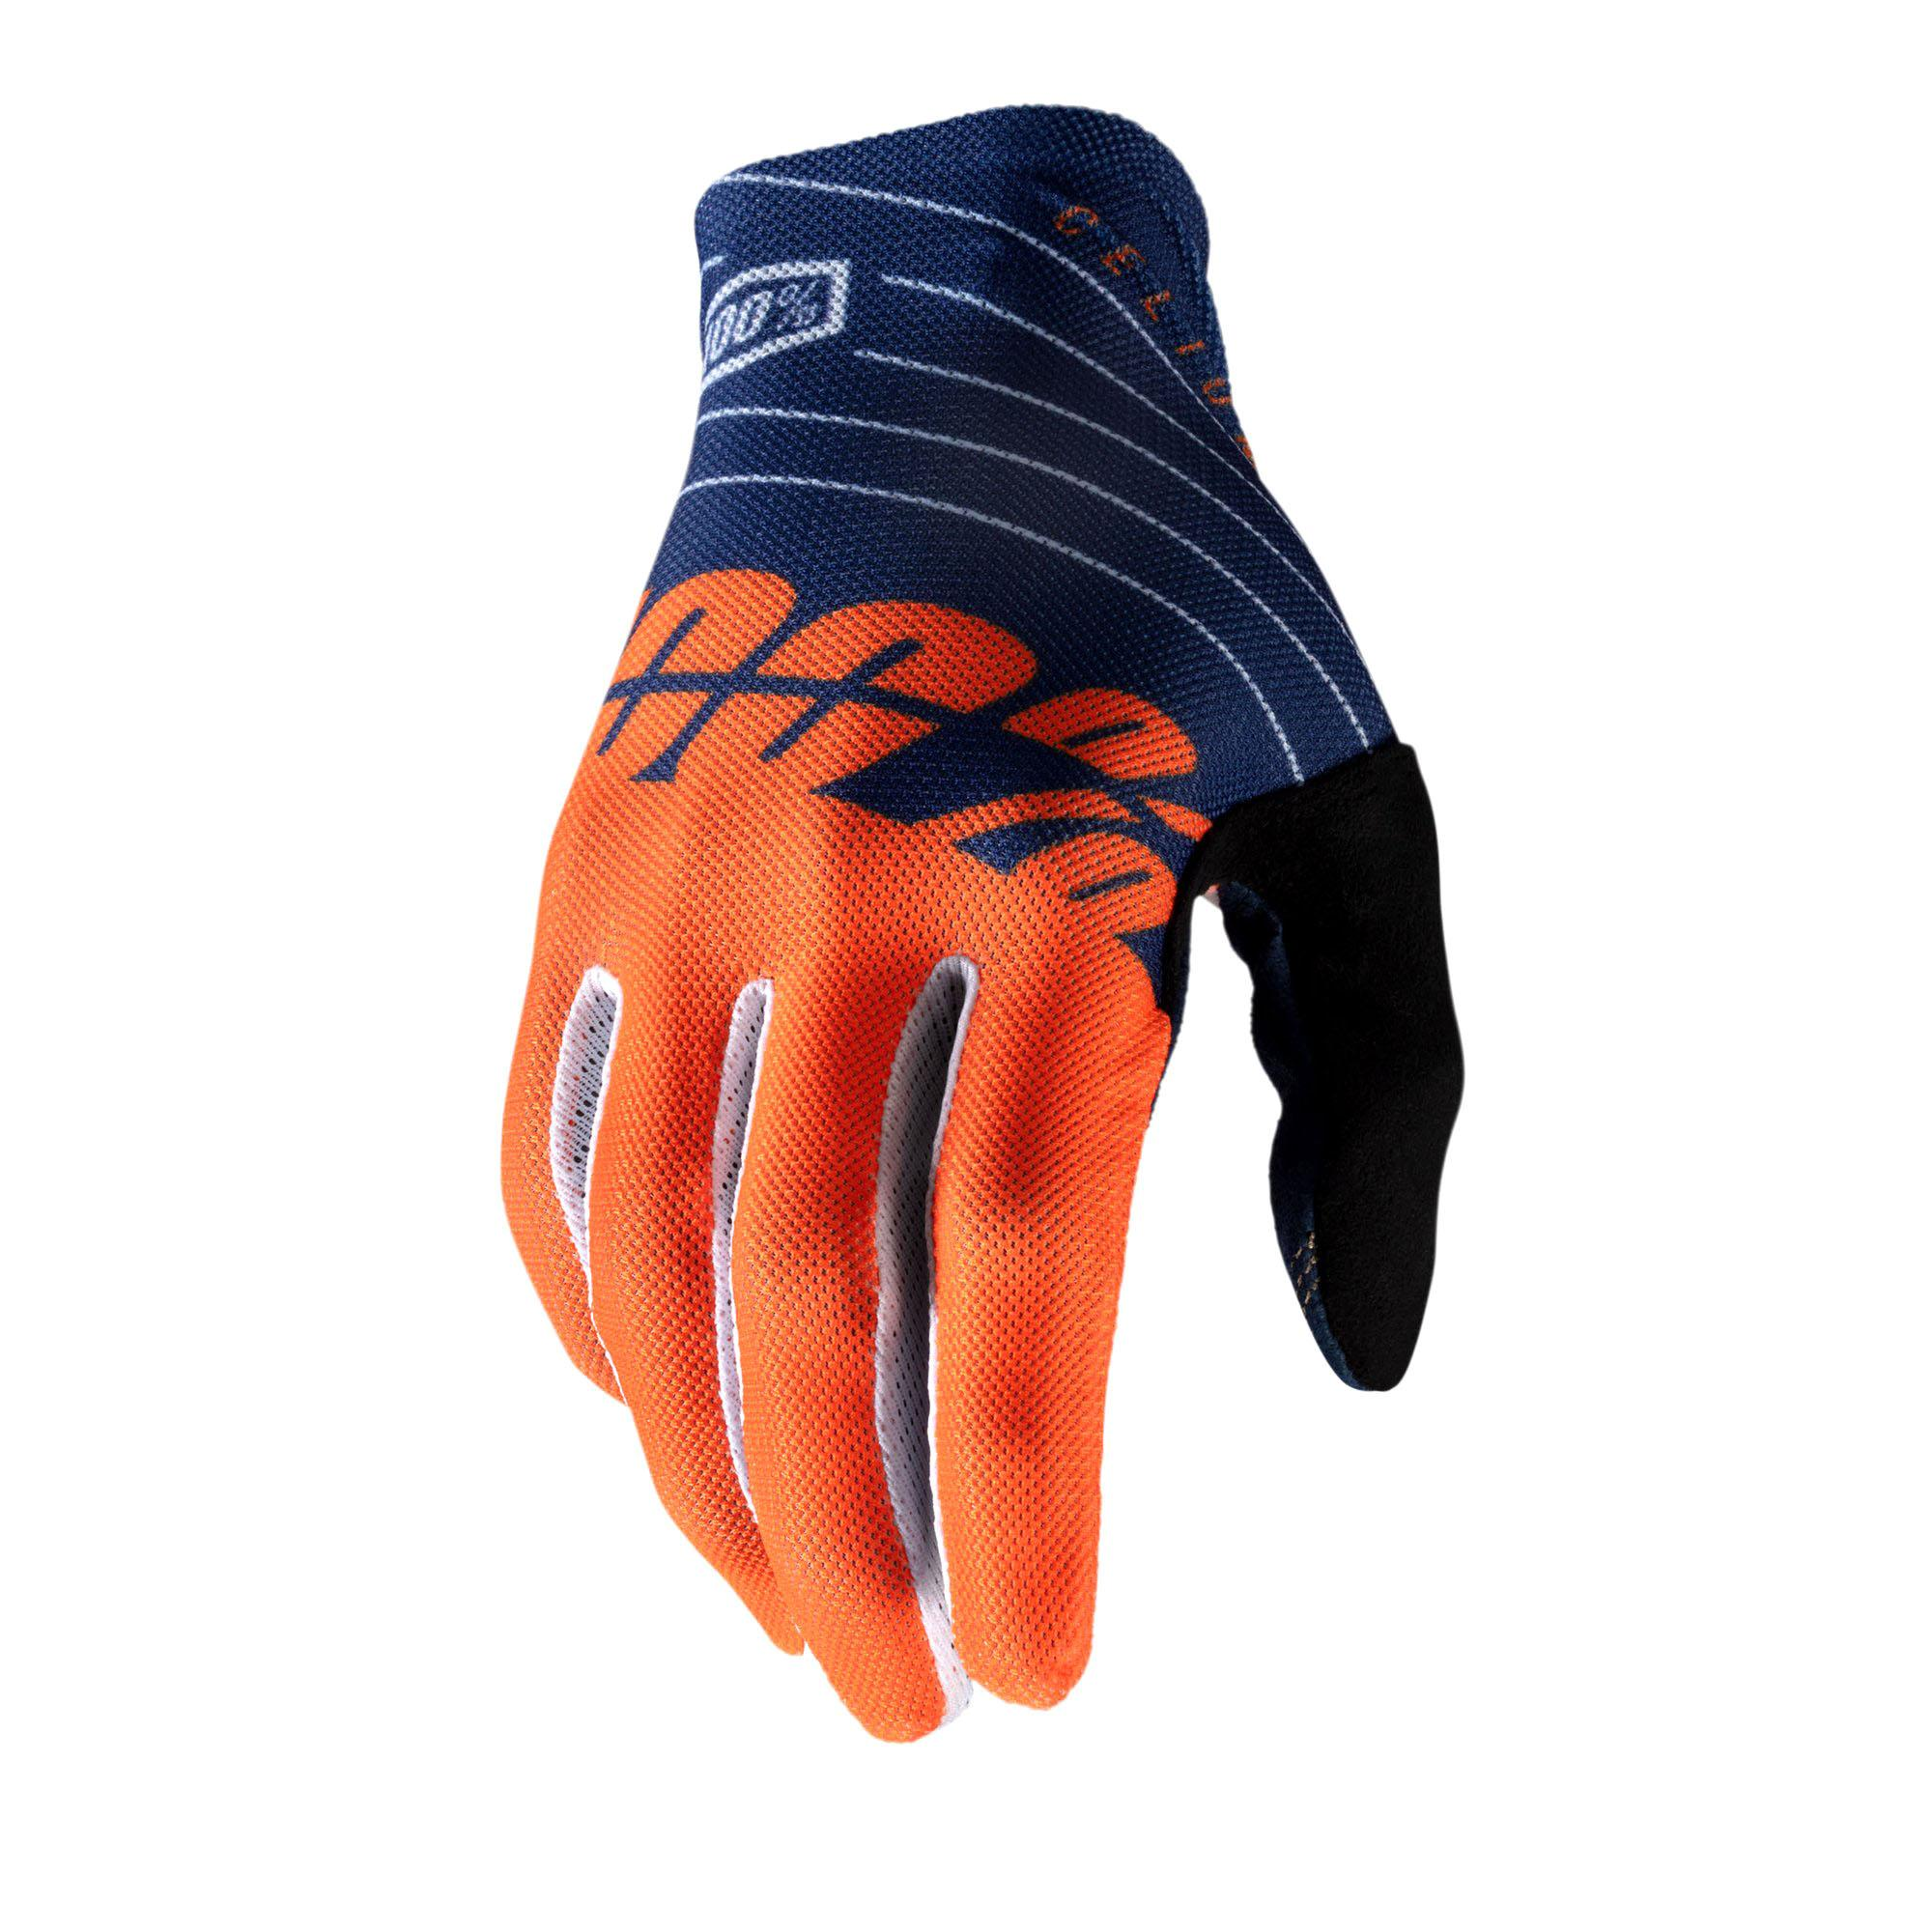 CELIUM Glove Navy/Orange